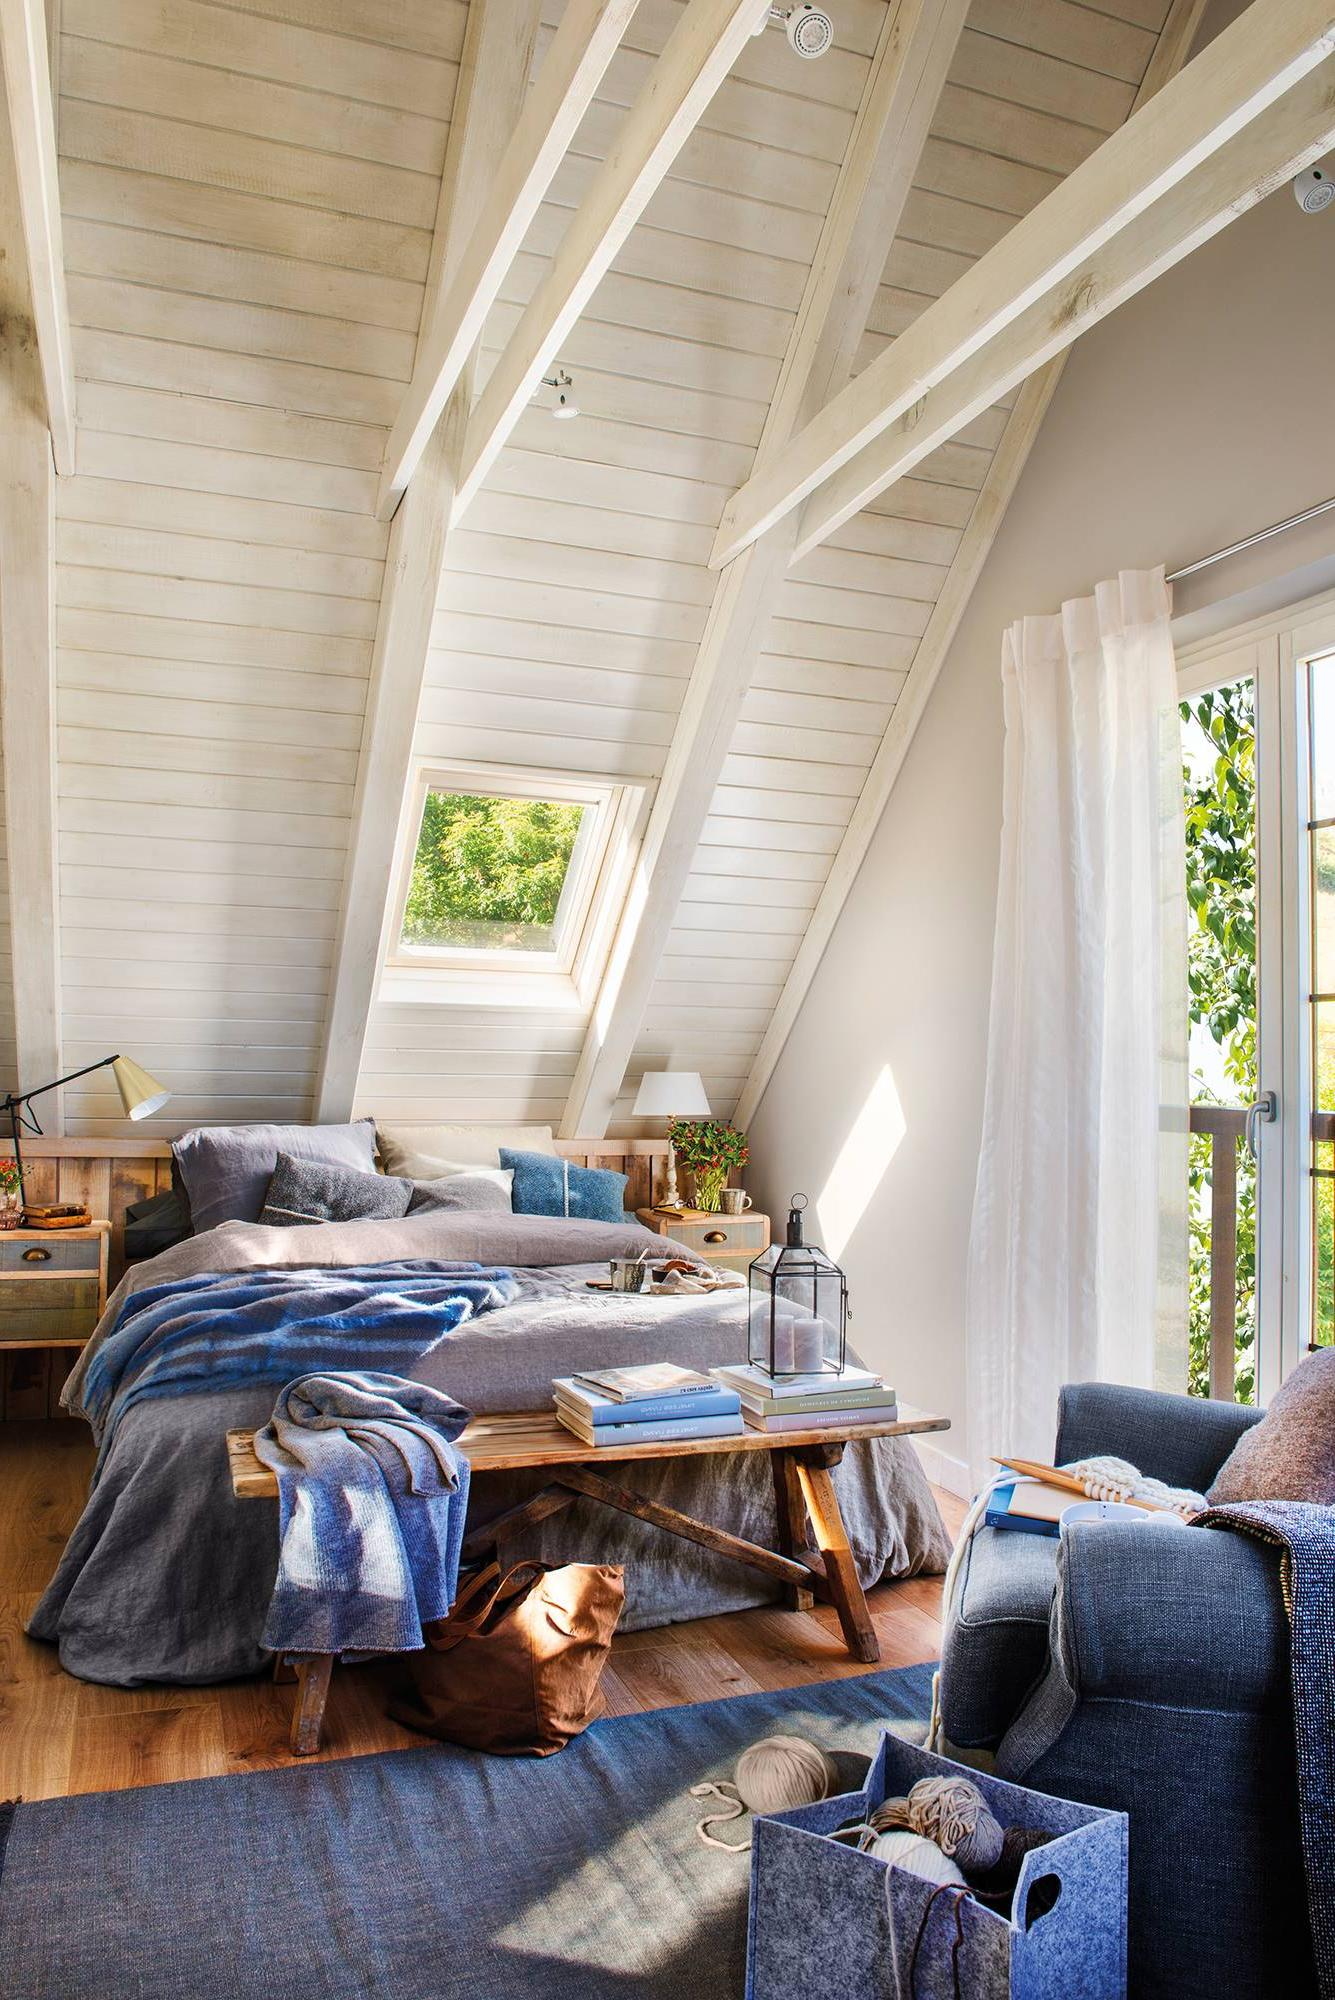 RUSTIC IN BLUE AND WHITE